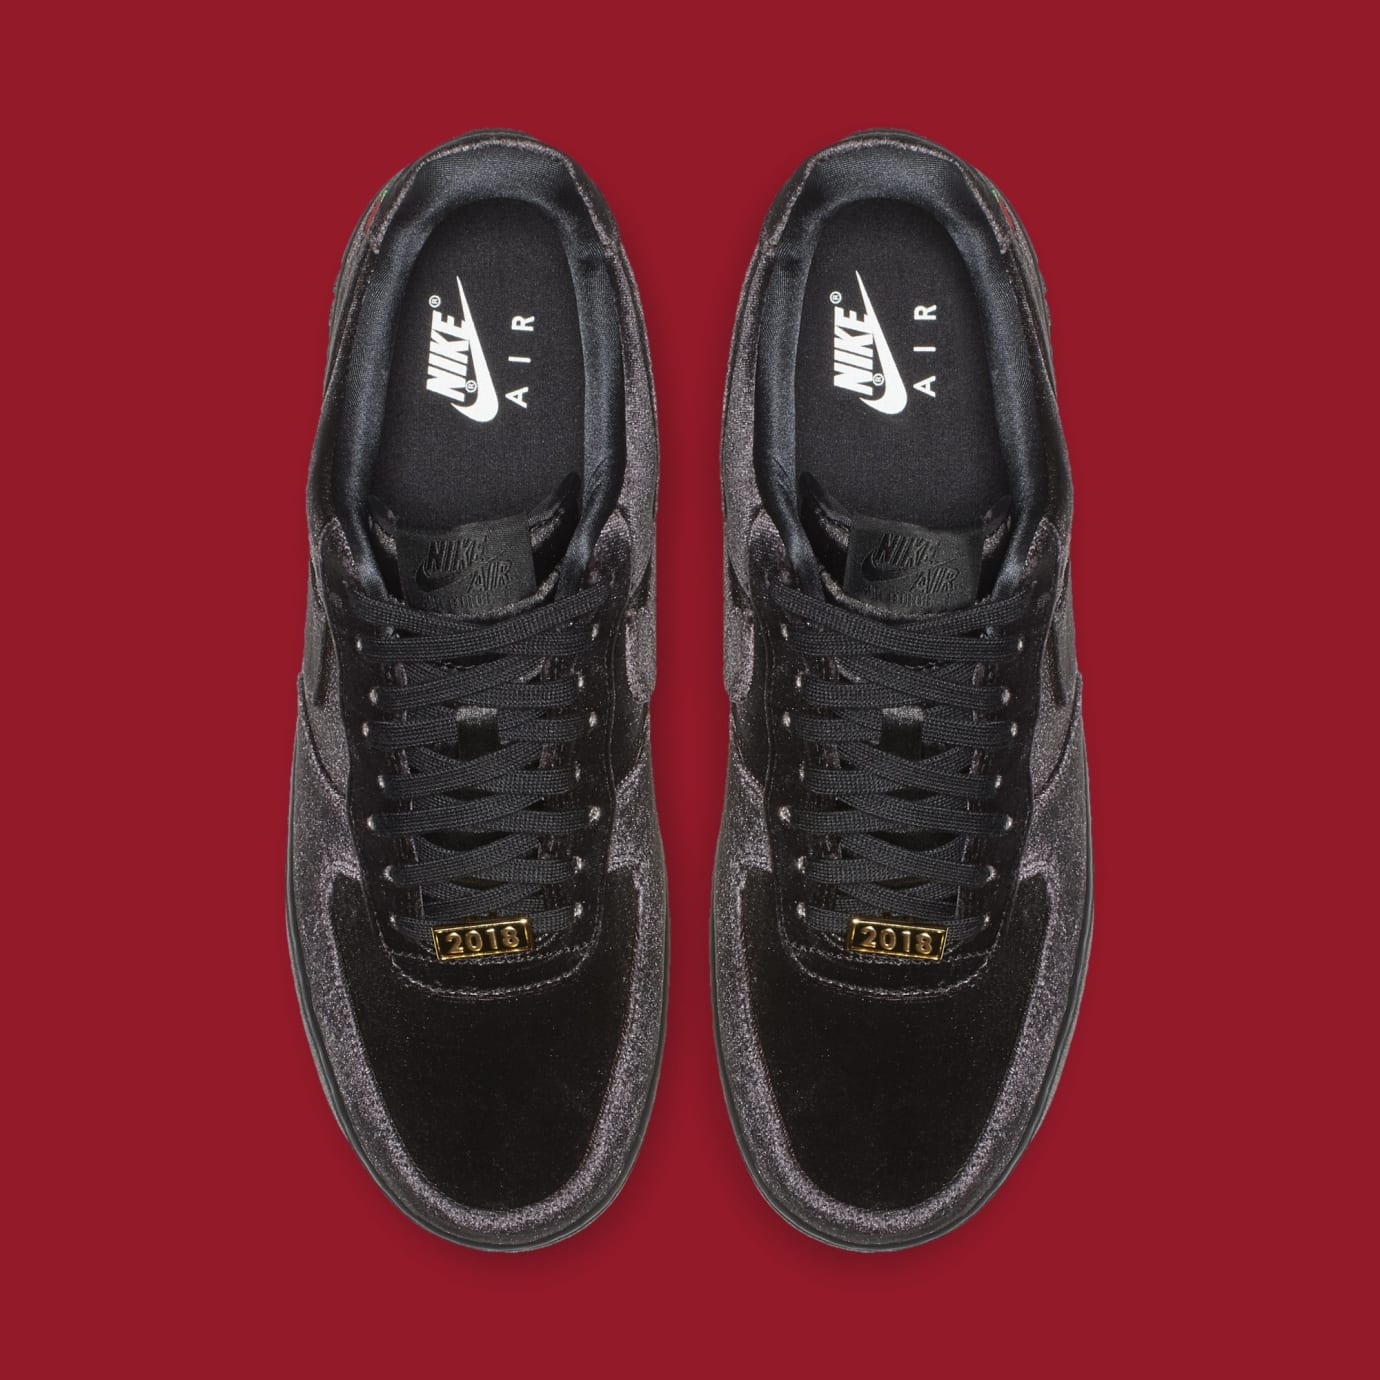 buy online 0199a c2e03 Image via Nike Nike Air Force 1 Low  Satin  AH8462-003 (Top)